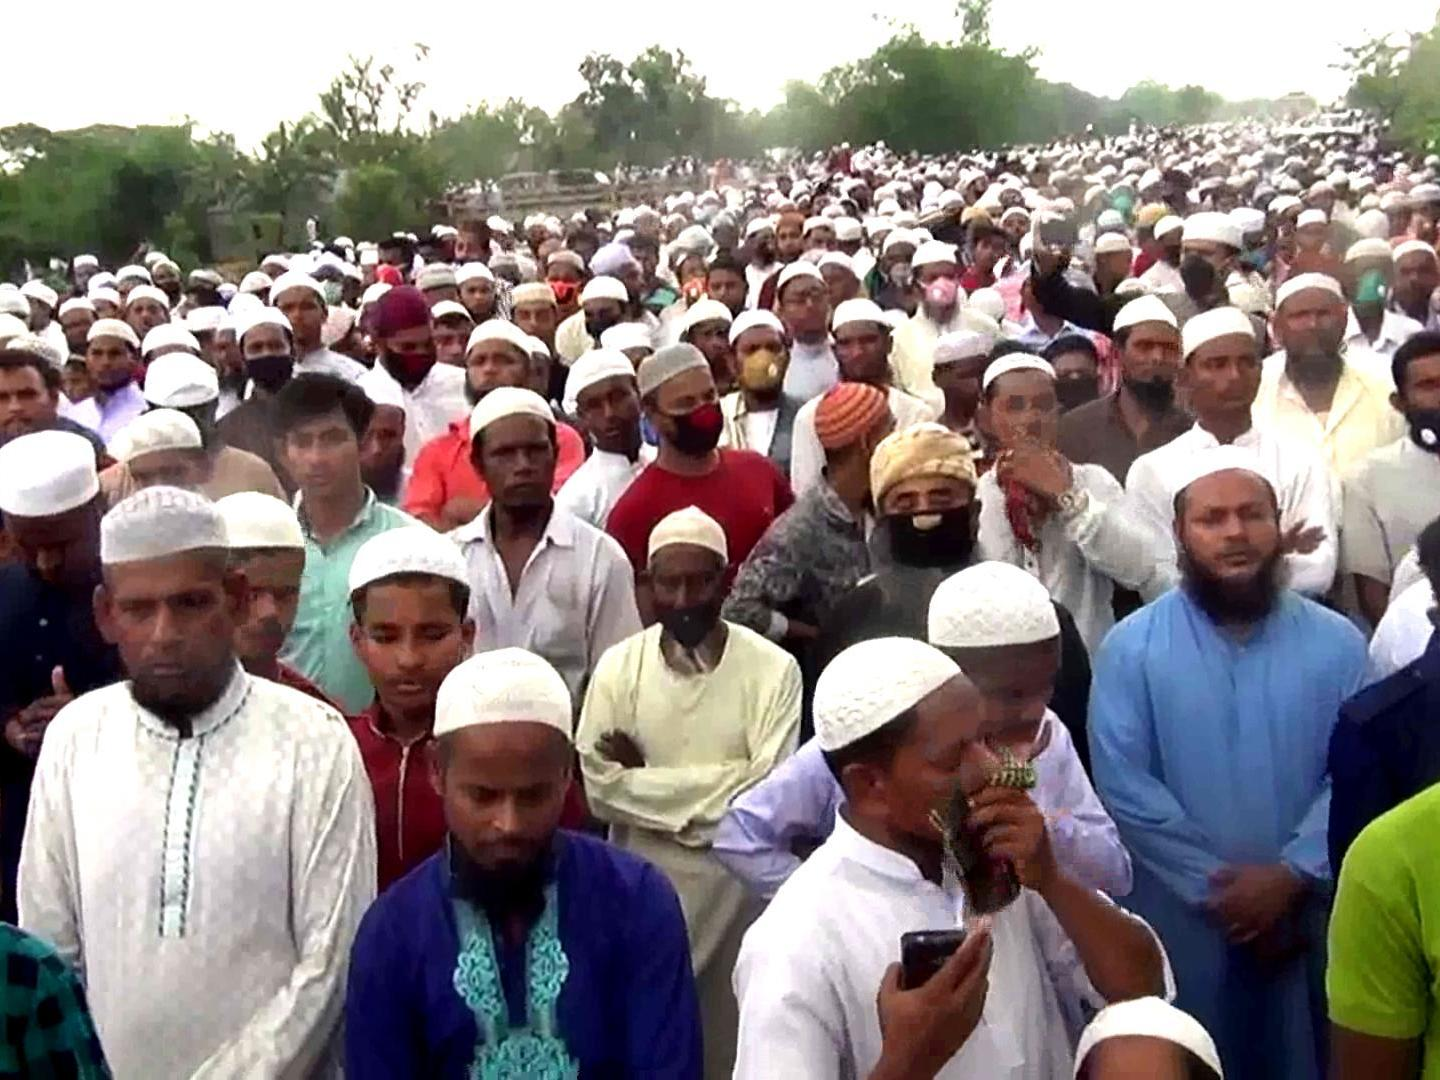 Coronavirus More Than 100 000 Defy Lockdown And Gather For Funeral In Bangladesh The Independent The Independent